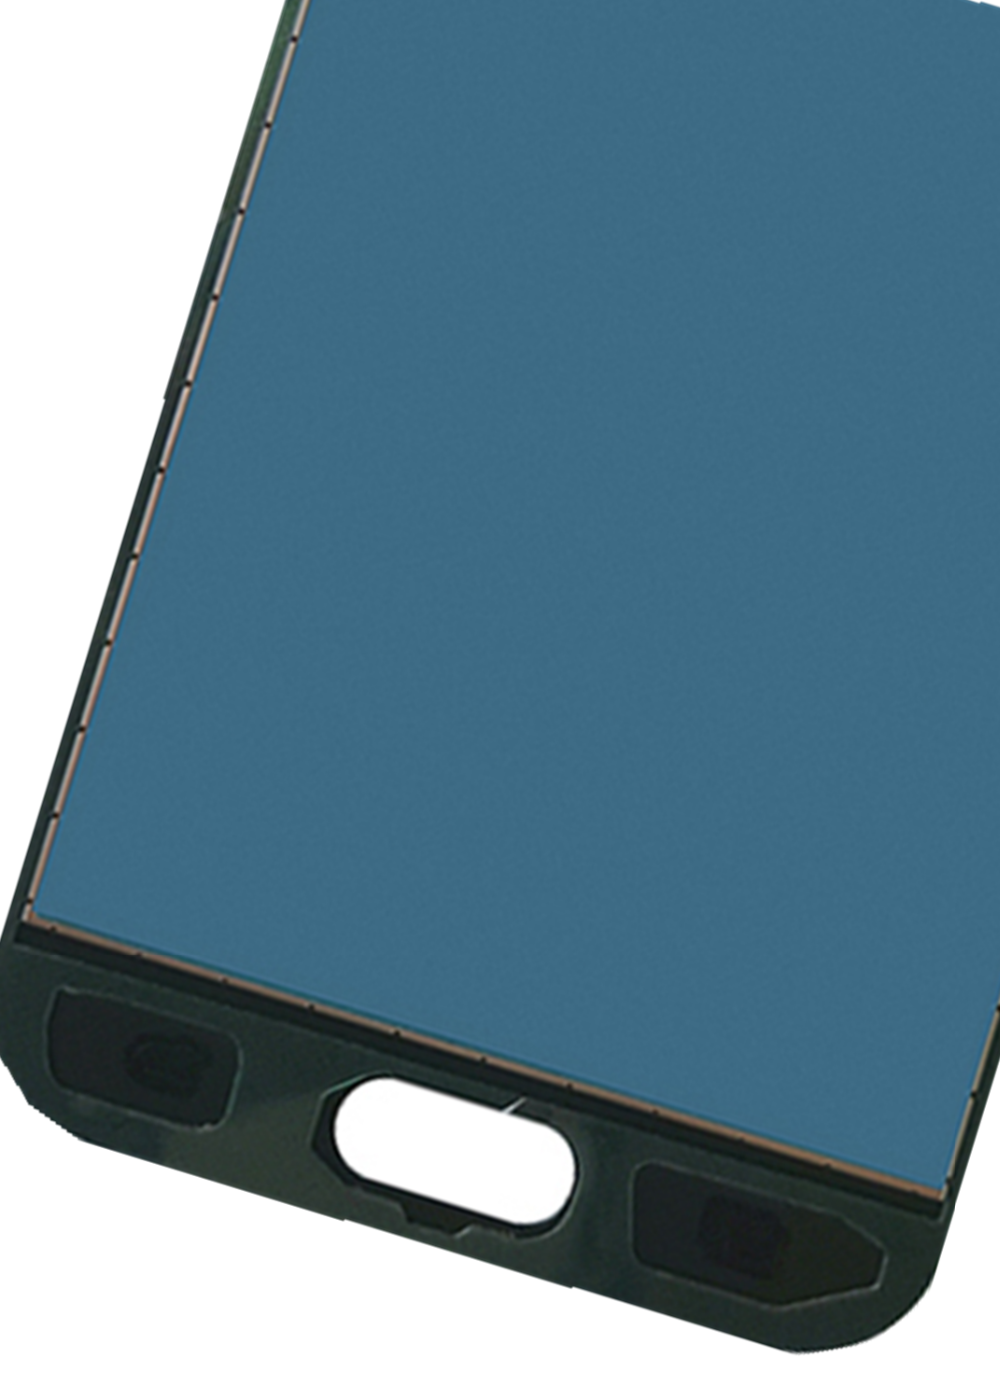 TFT-LCD-Screen-For-Samsung-S7-LCD-Display-Screen-Touch-Digitizer-Assembly-For-Galaxy-G930-G930A (1)1_副本